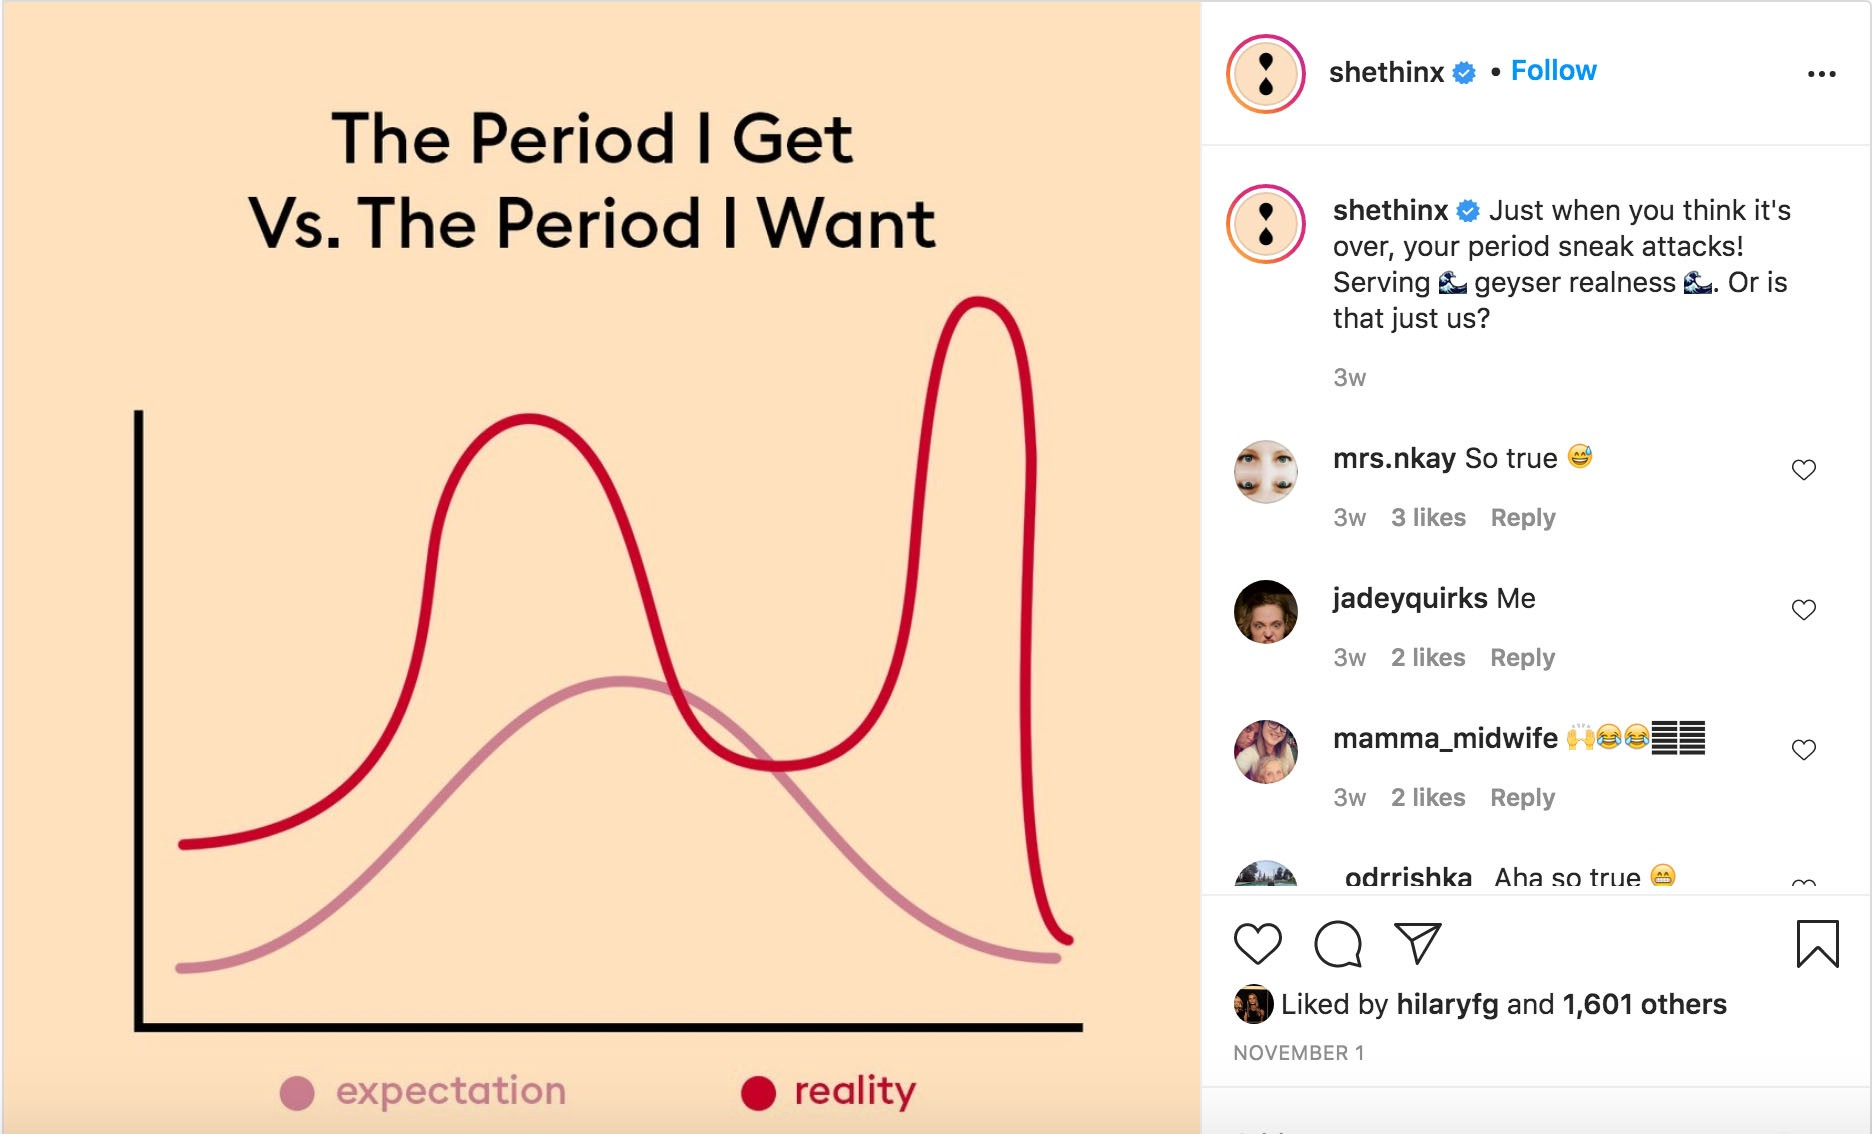 Screenshot from Instagram with a graph about periods.